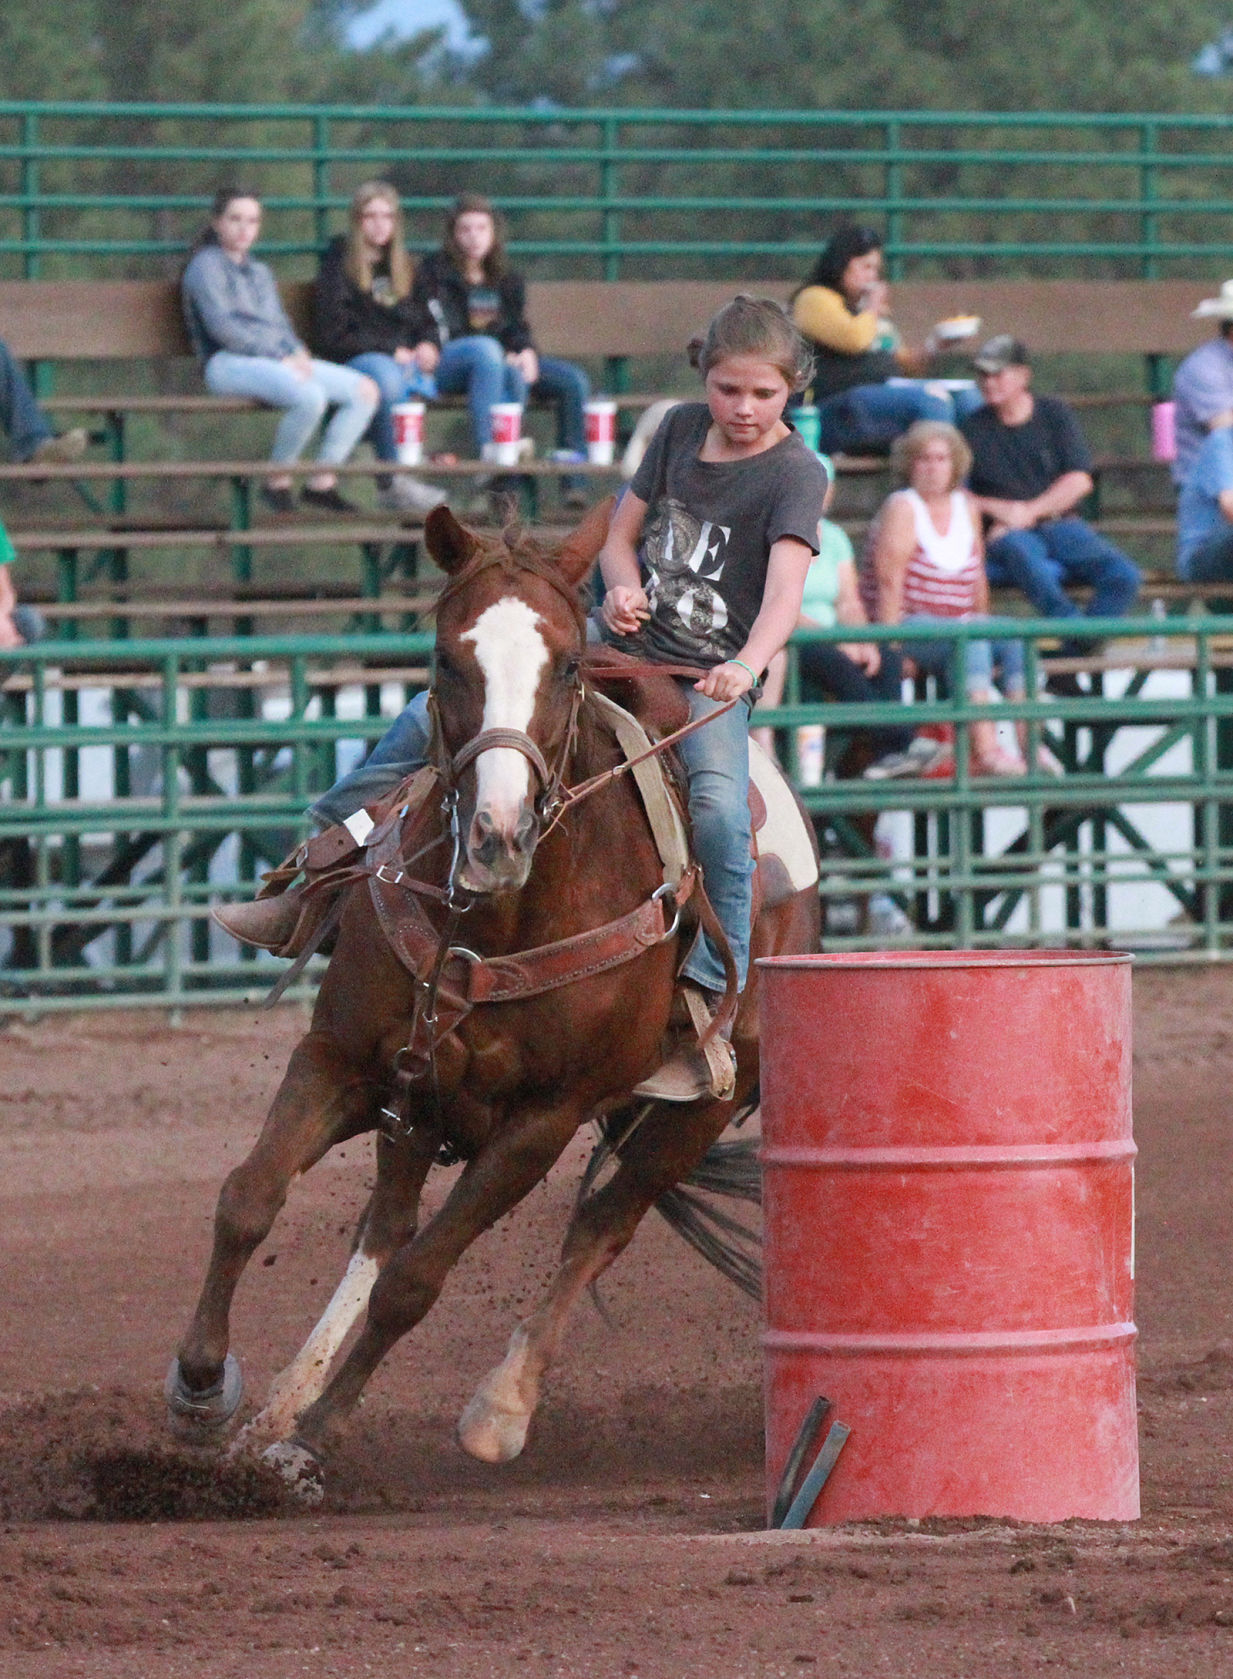 Barrel Racing Series Ends Saddle Winners Announced Local Sports Wmicentral Com